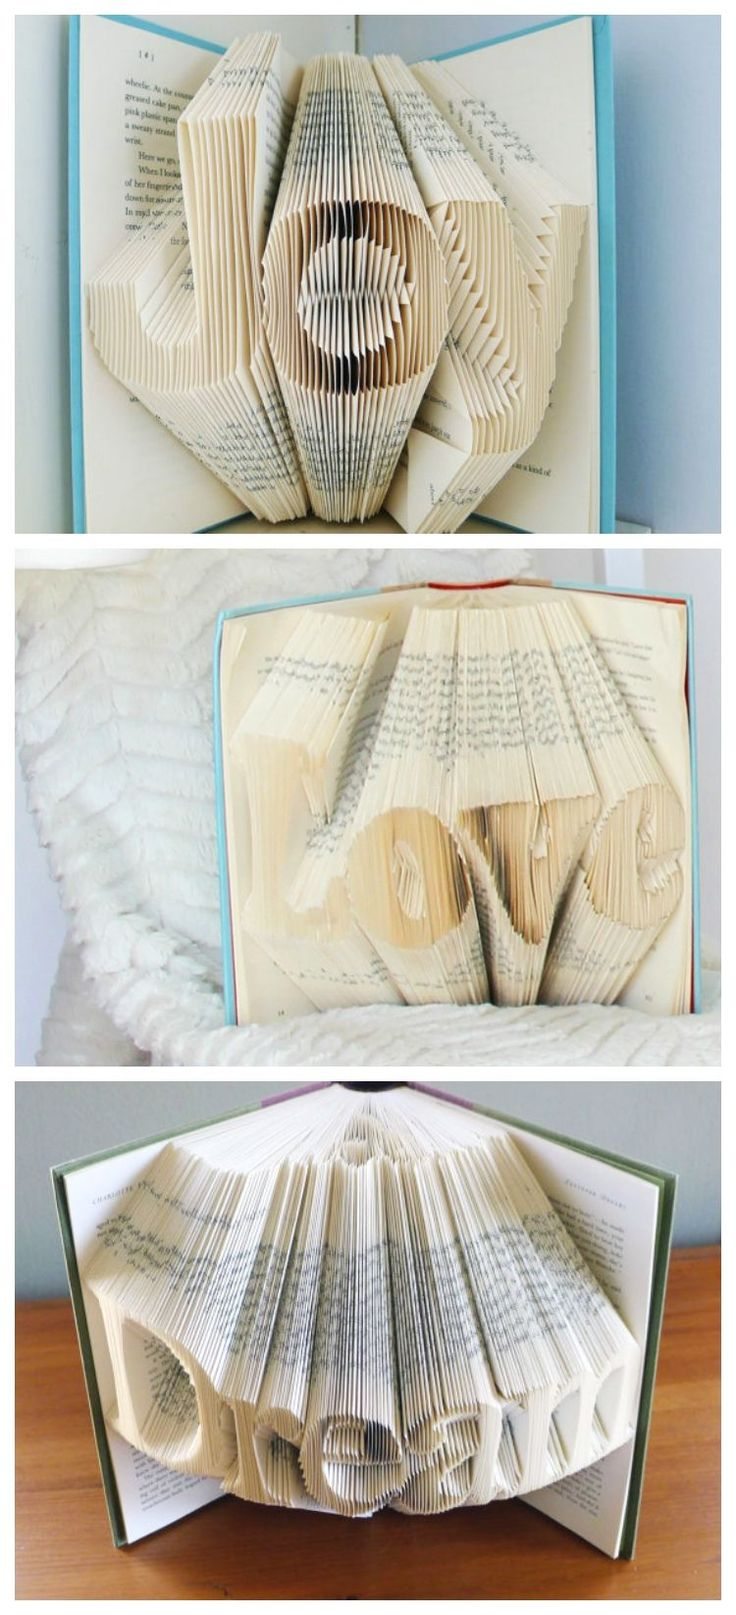 Design Diy Art Projects best 25 art projects ideas on pinterest diy book folding diy